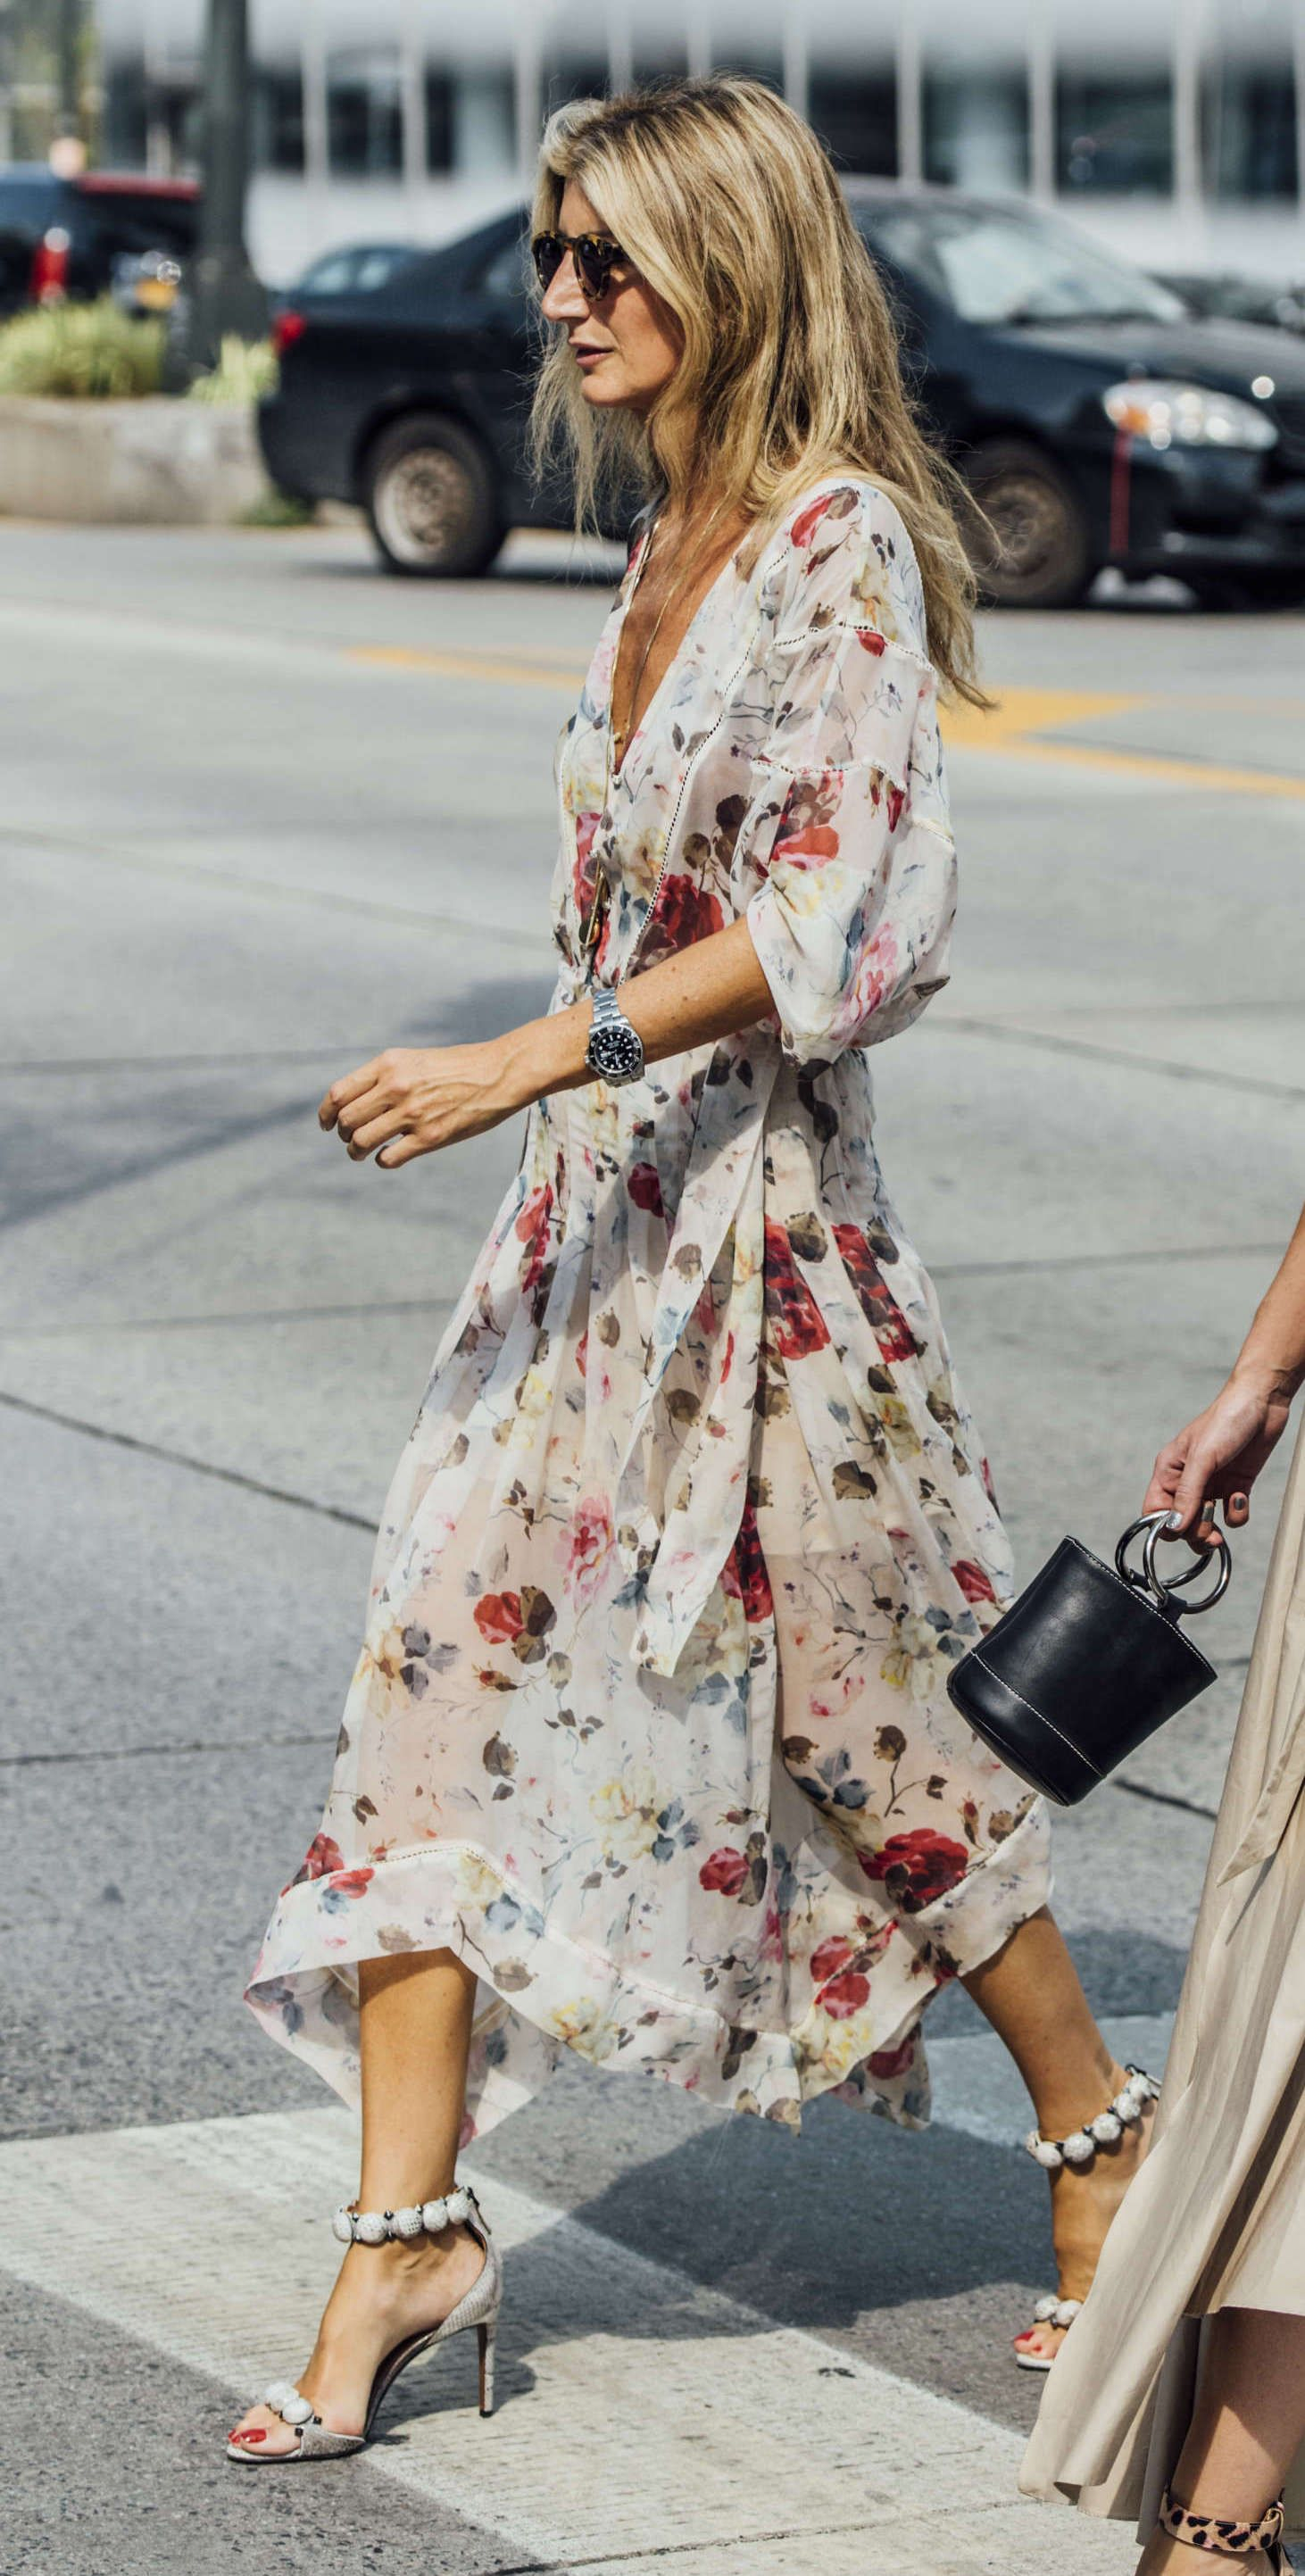 25 Of The Most Stylish Dresses To Wear To A Spring Wedding Stylish Dresses Dresses To Wear To A Wedding Fashion [ 2886 x 1462 Pixel ]